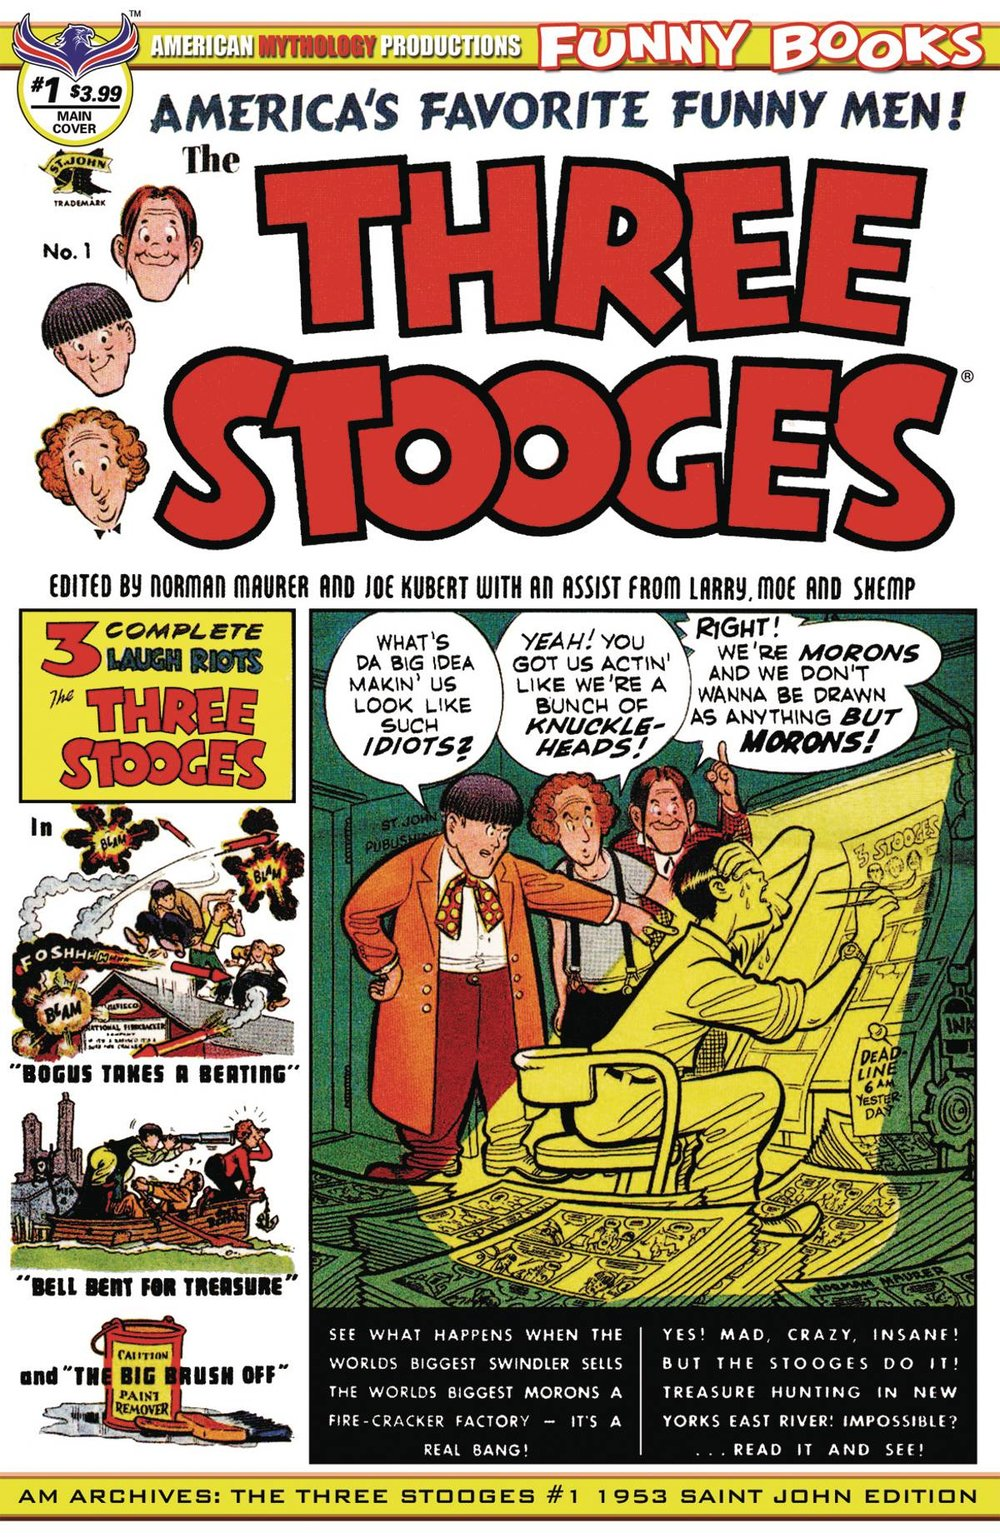 AM ARCHIVES THREE STOOGES 1 1953 SAINT JOHN EDITION.jpg